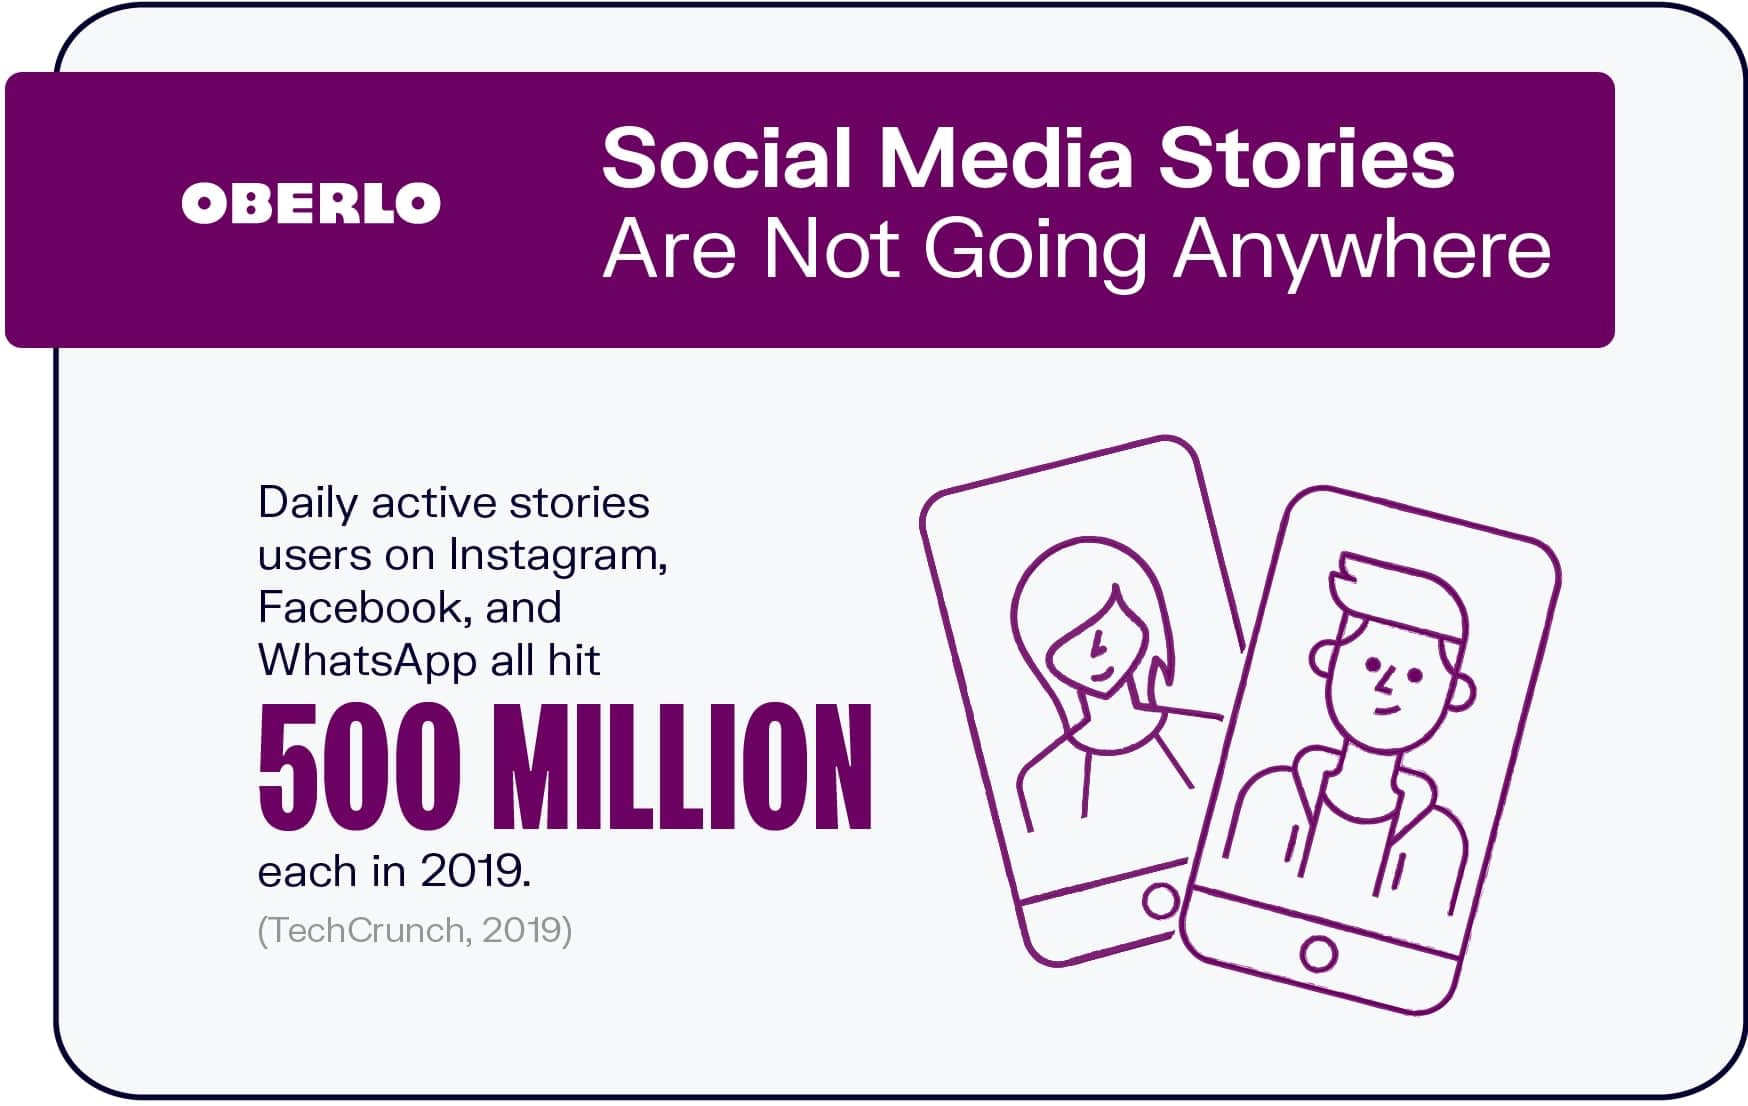 Social Media Stories Are Not Going Anywhere